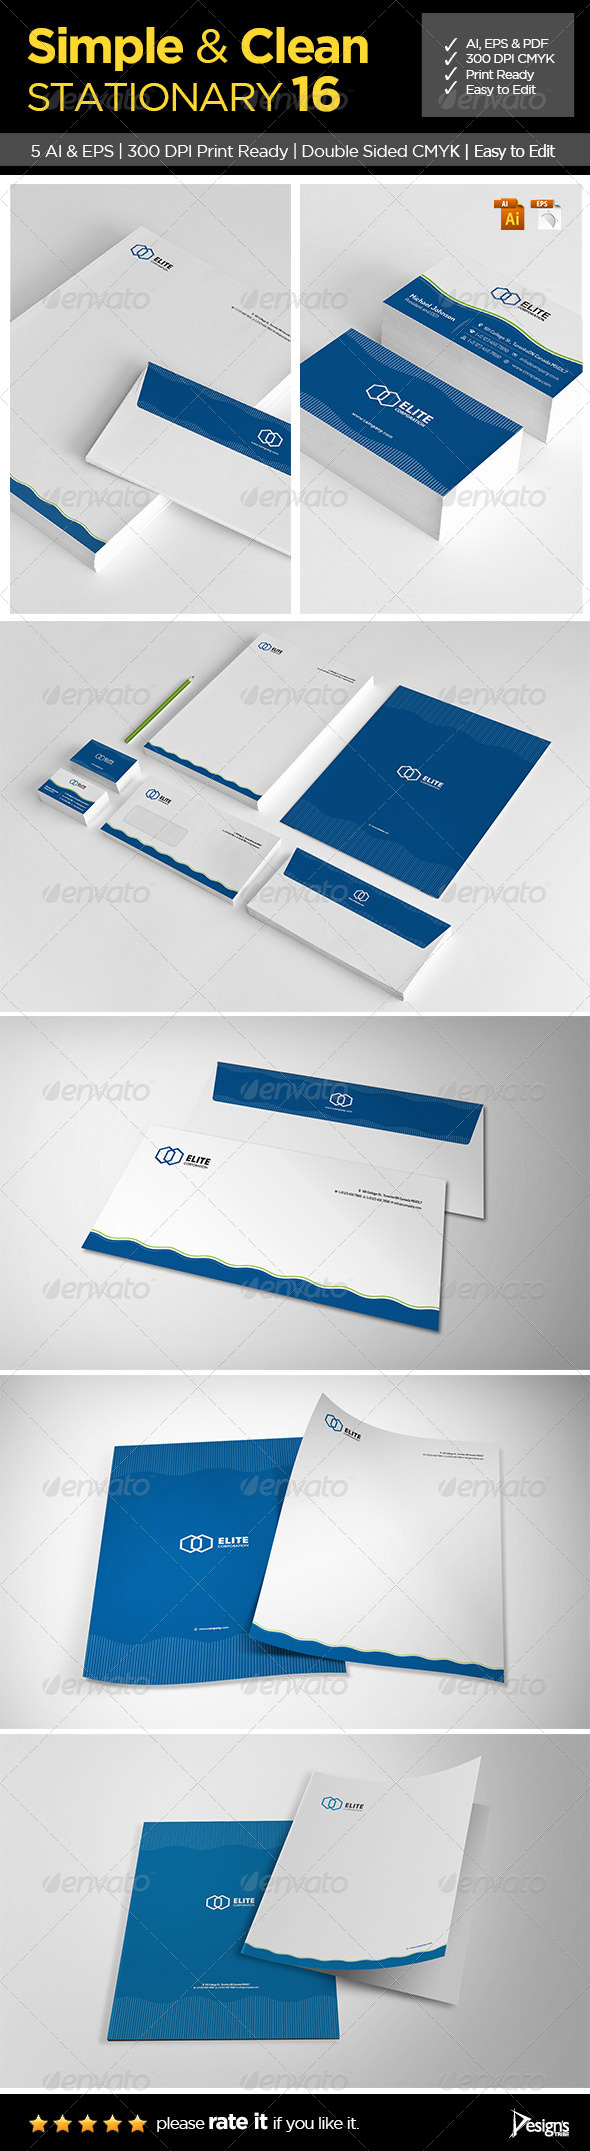 Simple and Clean Stationary 16 - Stationery Print Templates